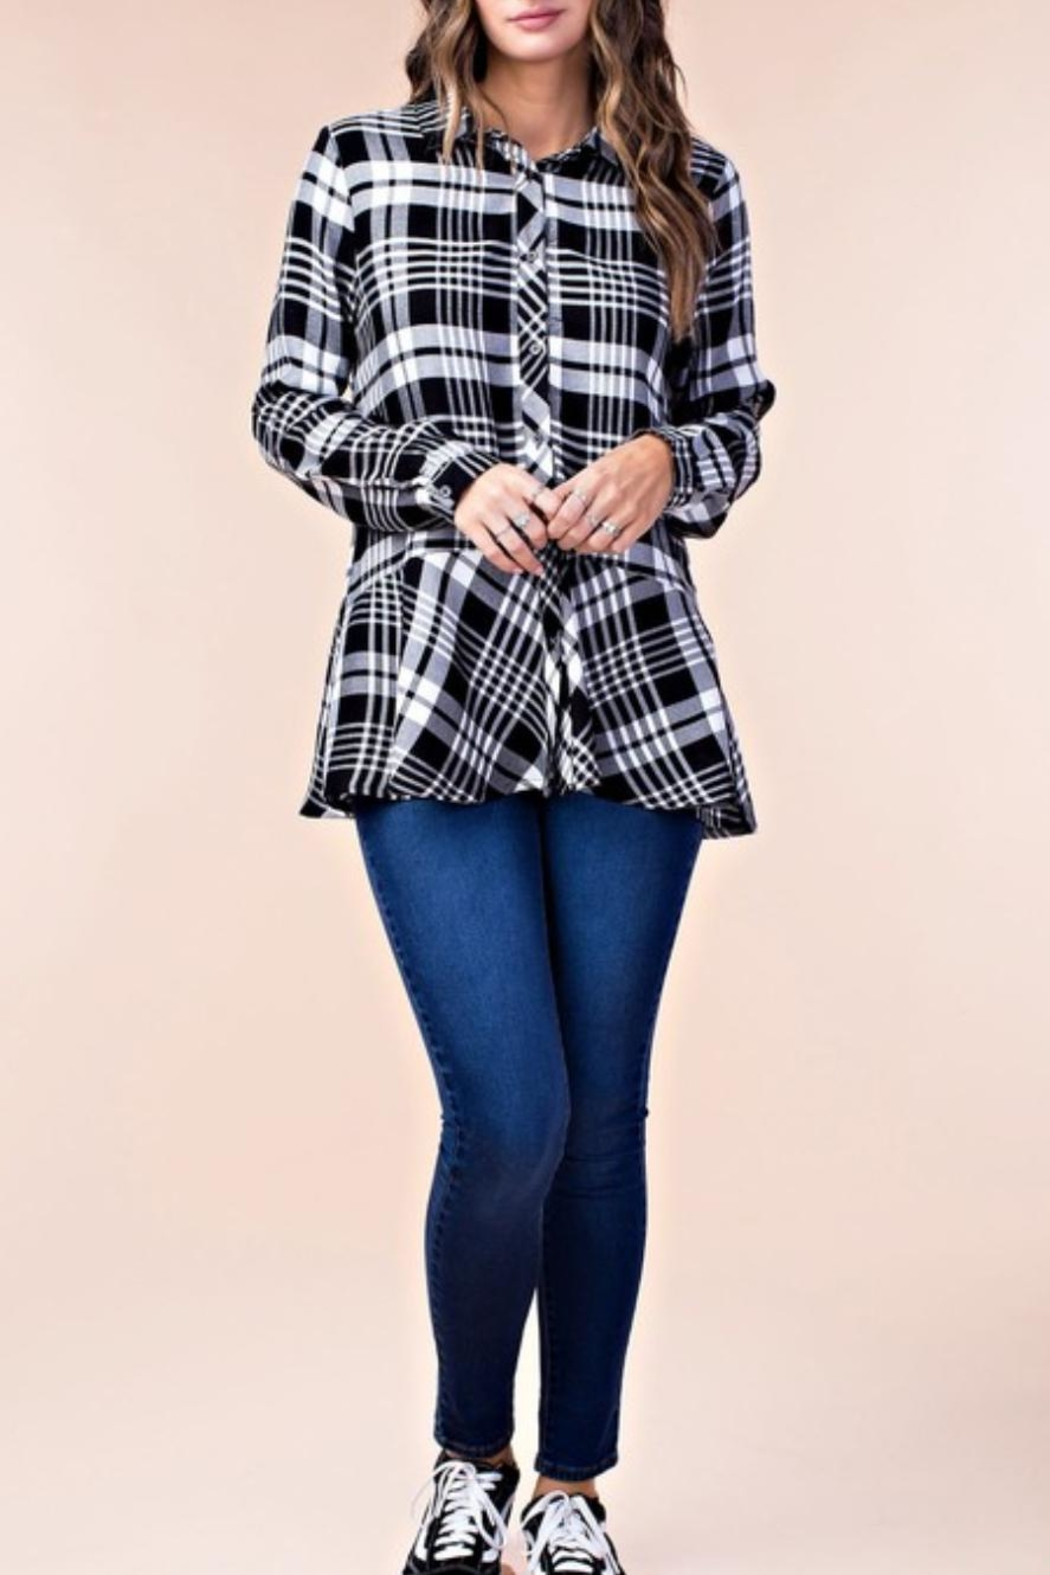 KORI AMERICA Ruffle Plaid Top - Front Cropped Image